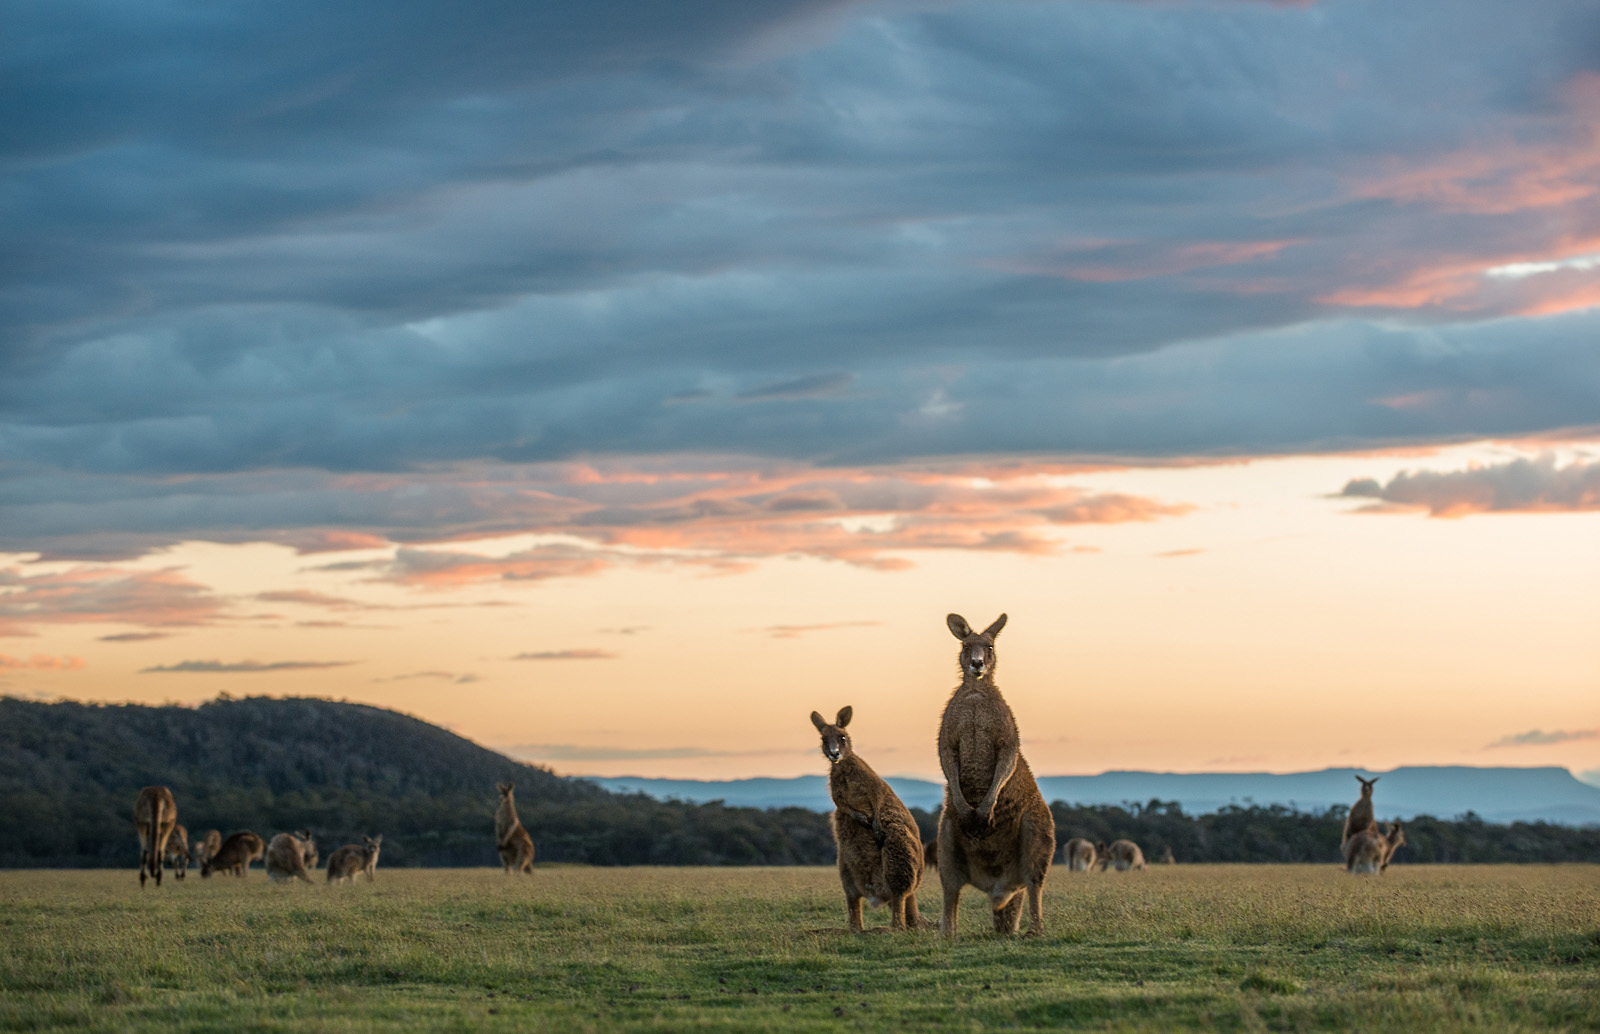 Eastern grey kangaroos (Macropus giganteus), known locally as a foresters, beneath a colorful sky in the opn grasslands of Narawantapu National Park in Tasmania, Australia.